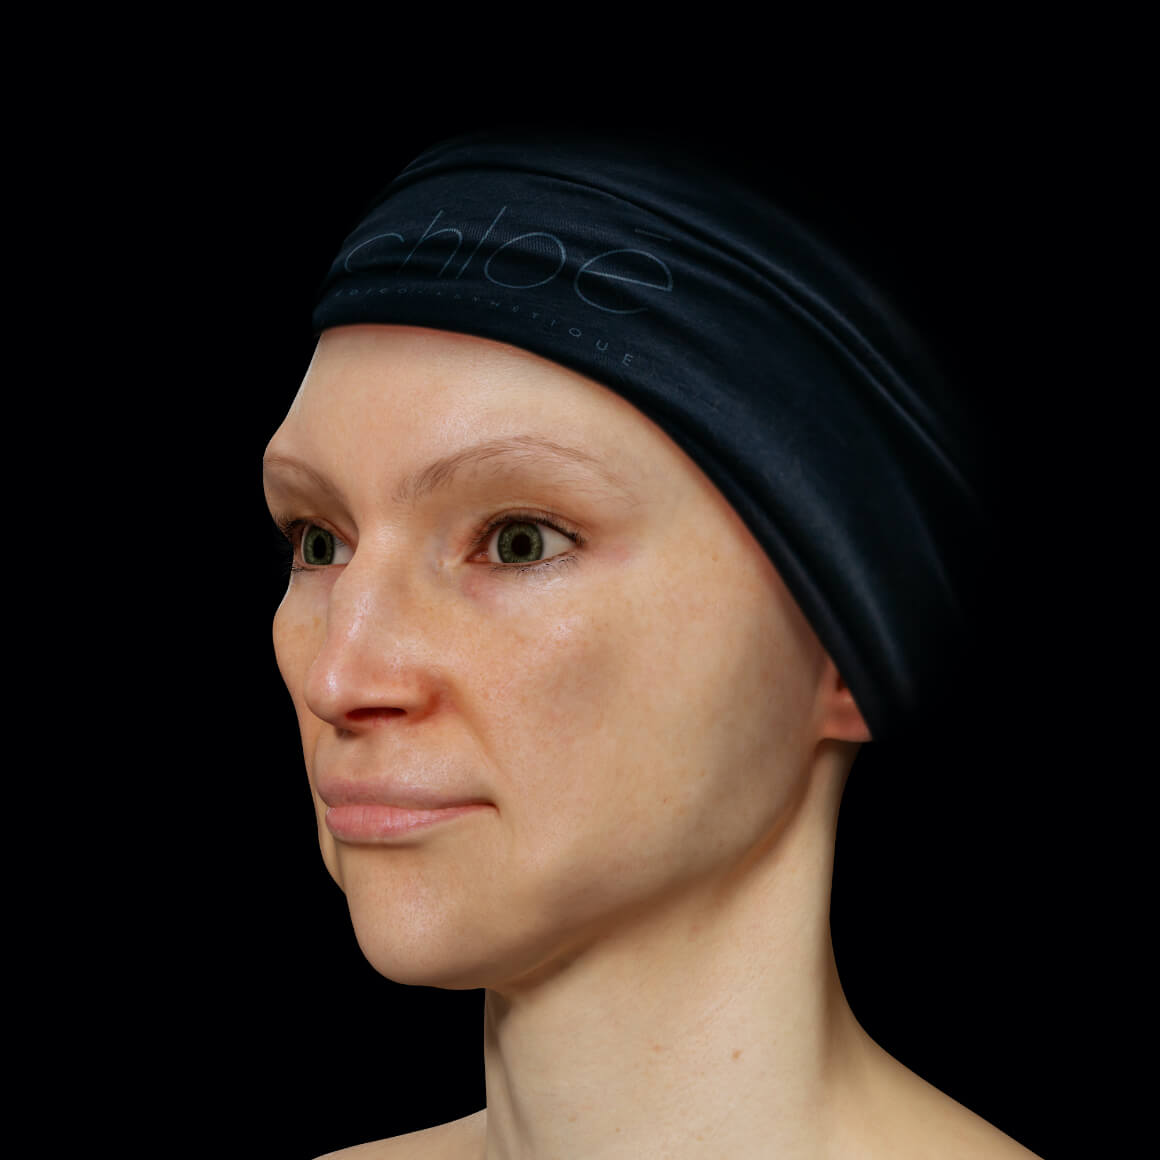 Angled Clinique Chloé female patient after fractional laser treatments to erase melasma